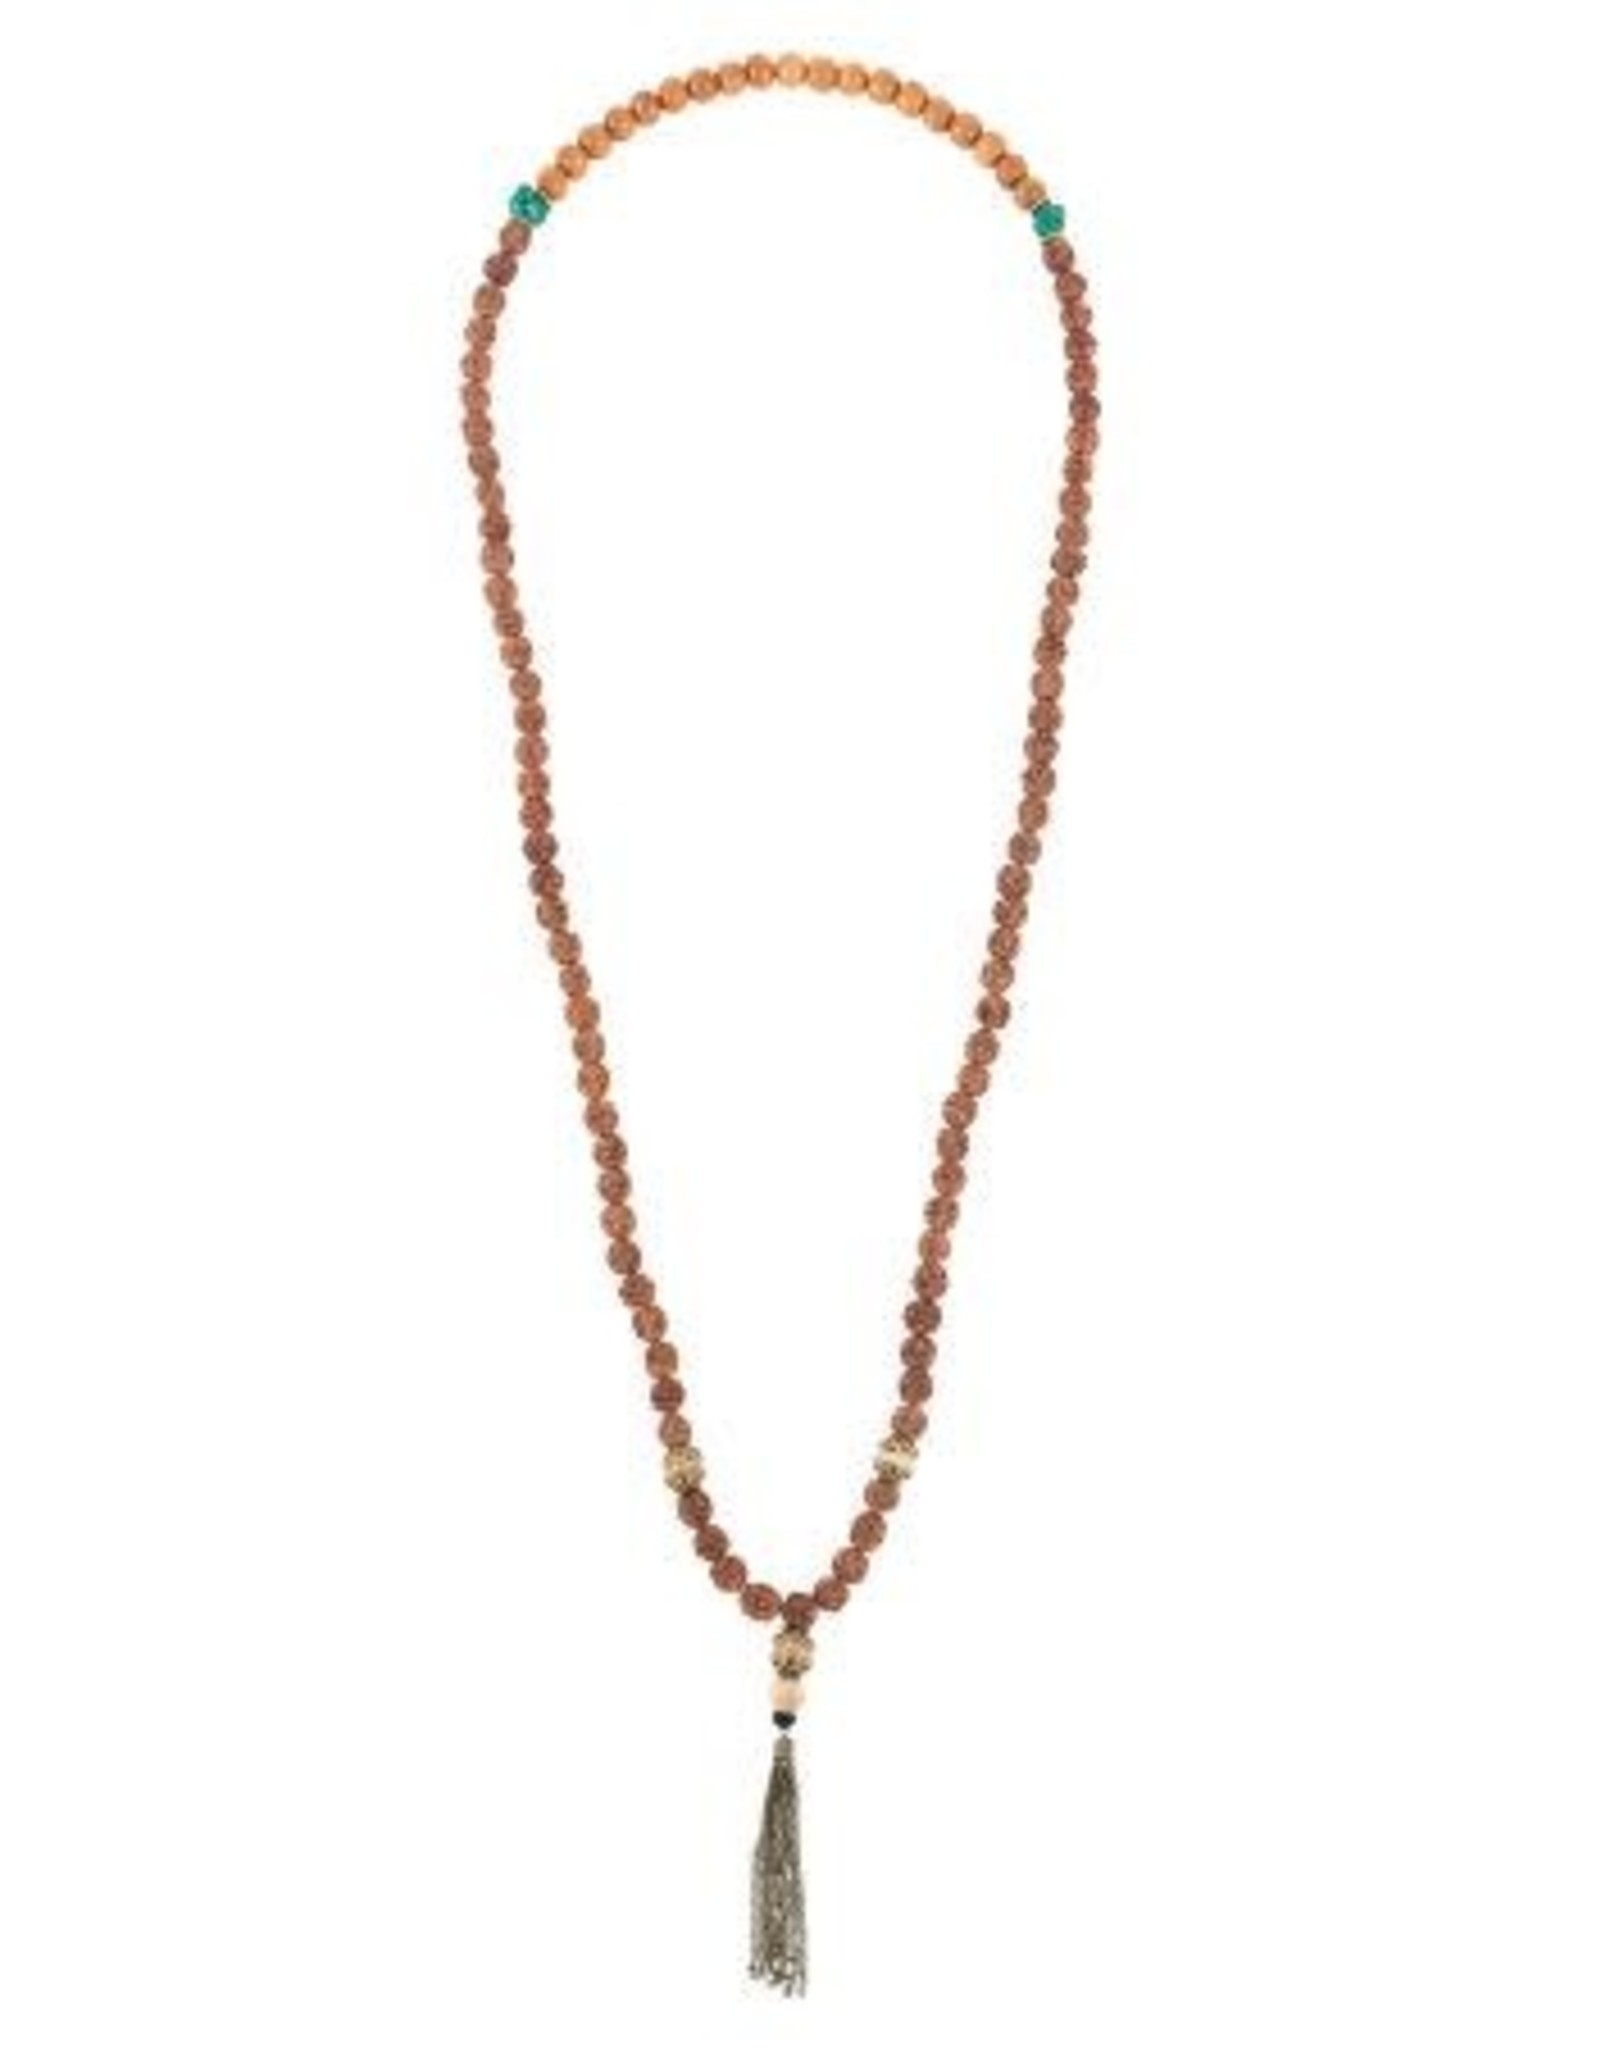 Mala Beads Necklace, India